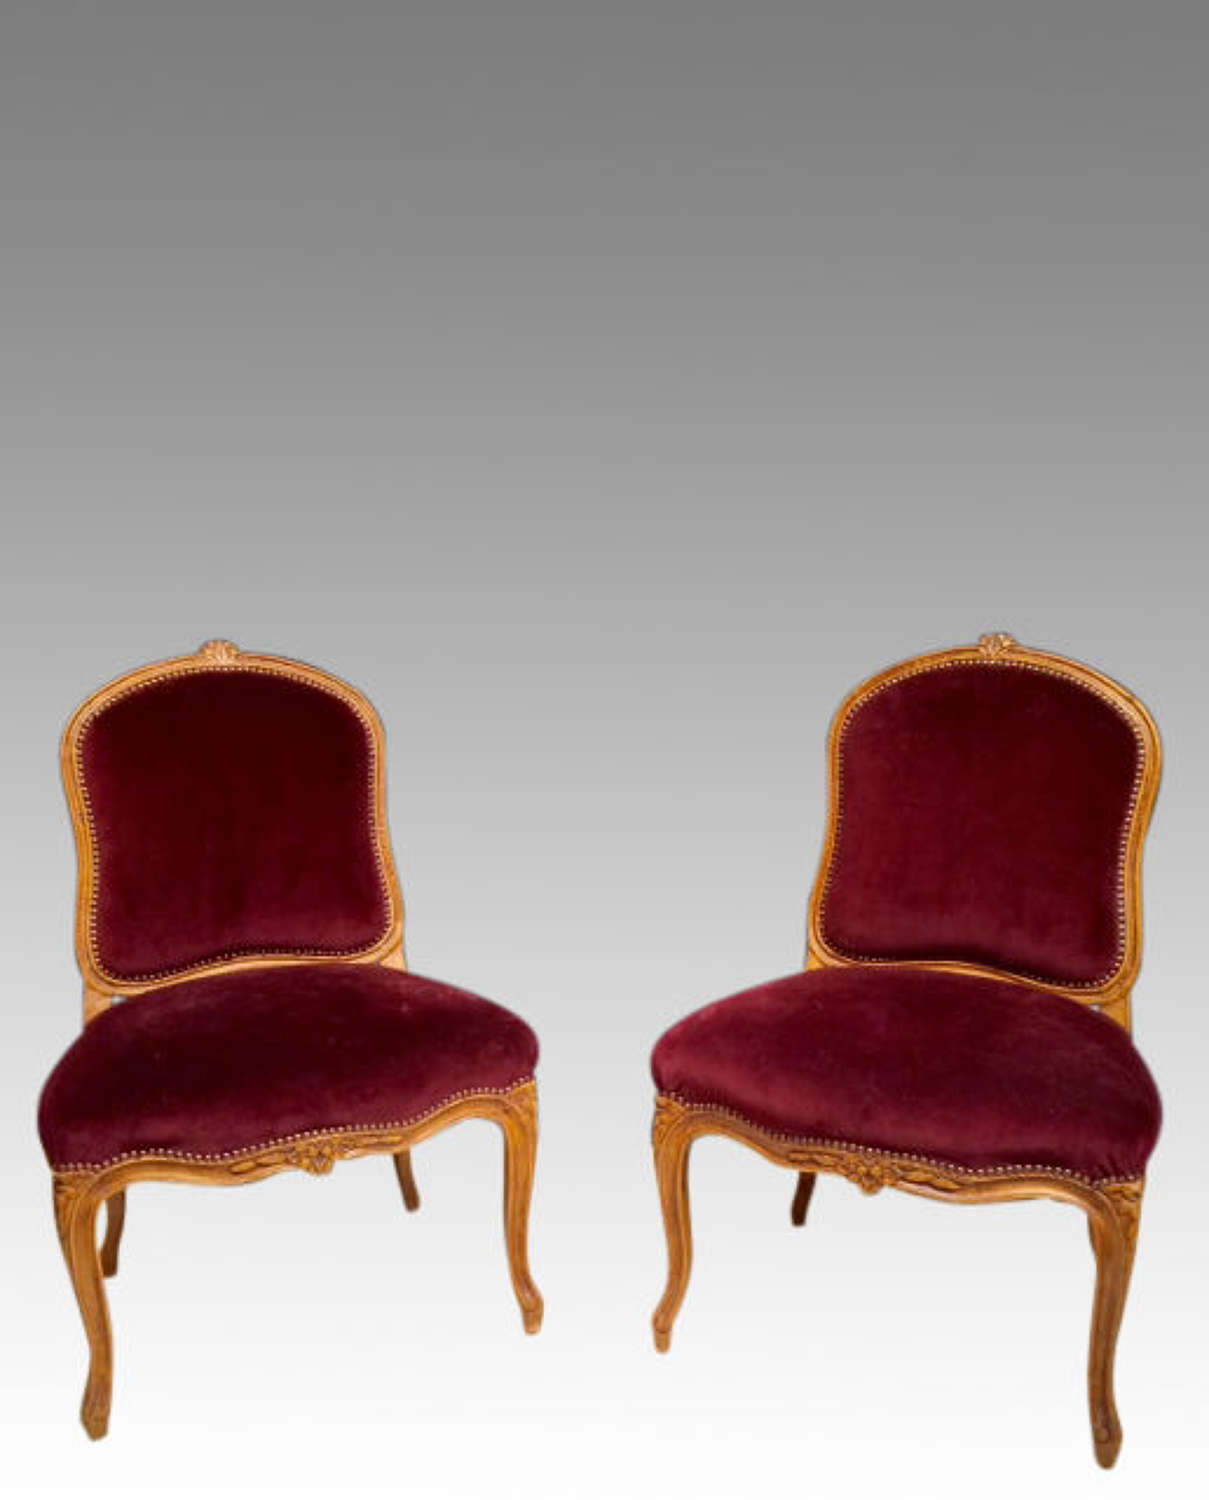 Pair of 19th century French side chairs.